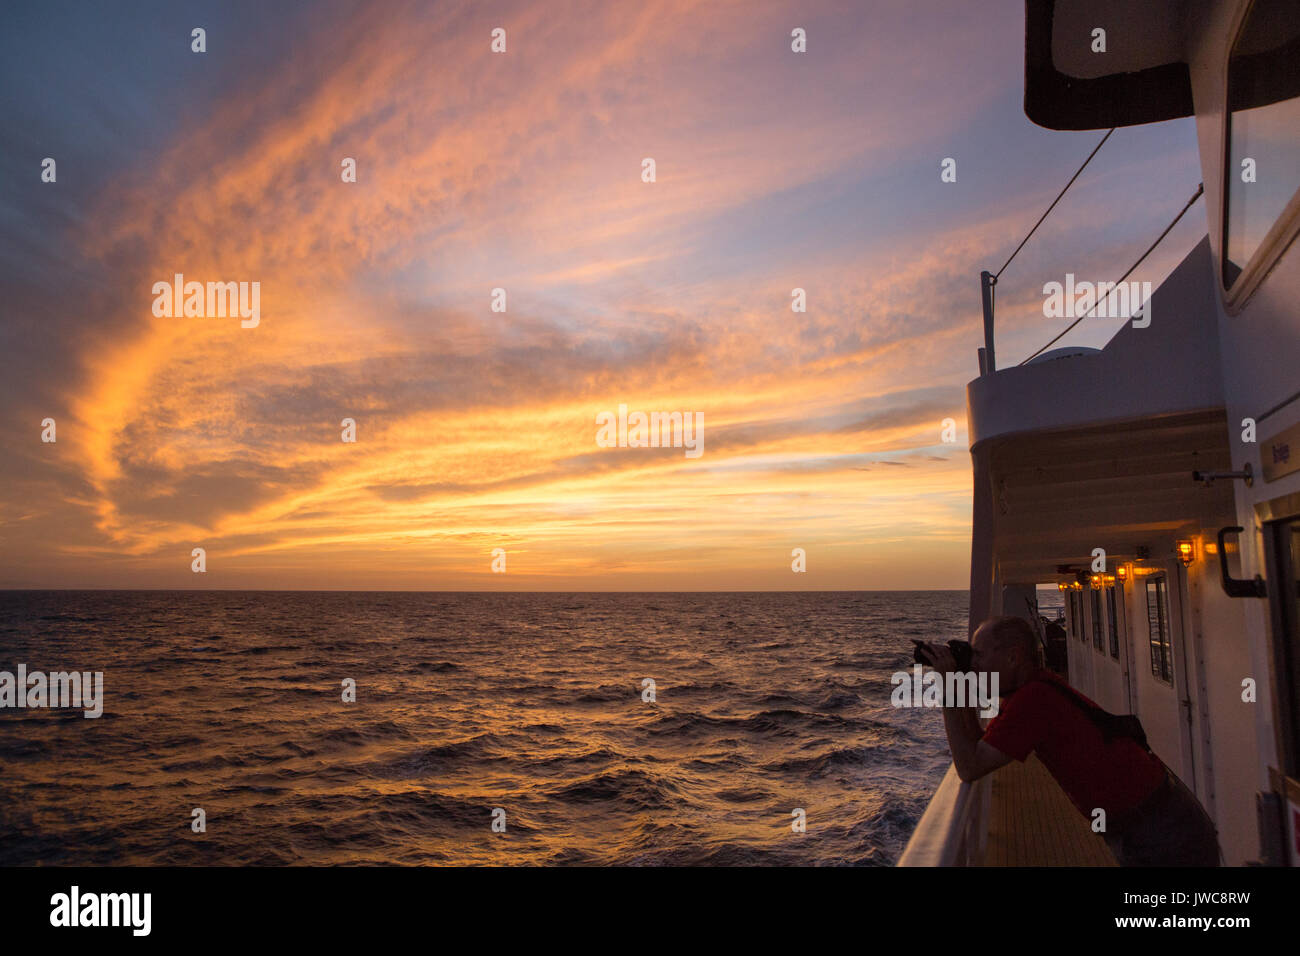 The rising sun illuminates clouds above the waters near Isla Coiba National Park as a passenger aboard the National Geographic Sea Lion photographs the surrounding landscape. - Stock Image